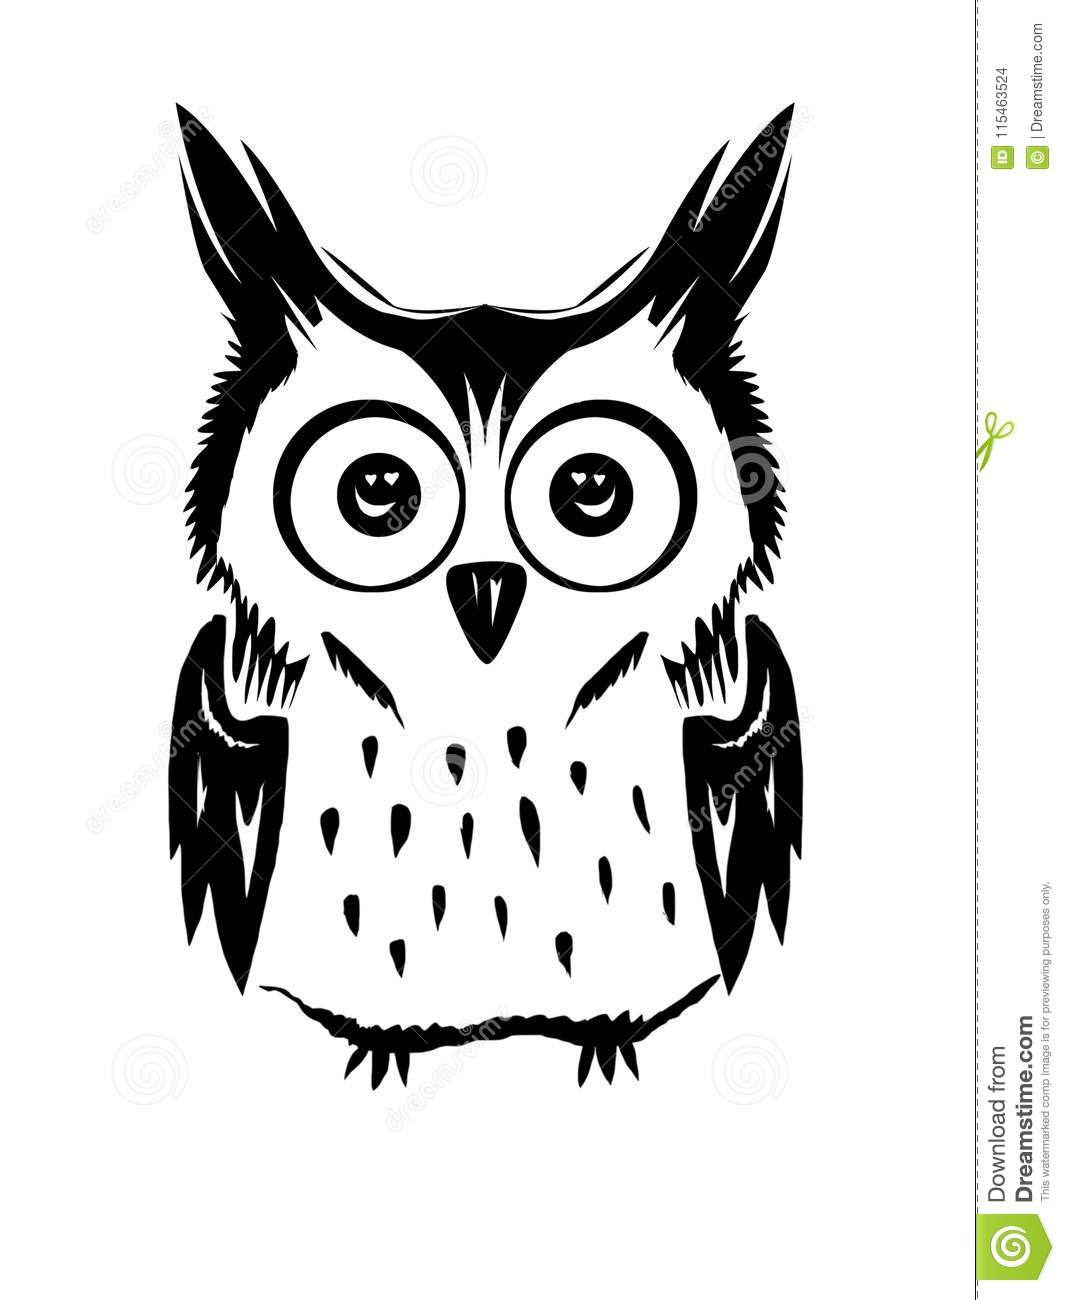 Cute Owl Vector Black And White Stock Vector